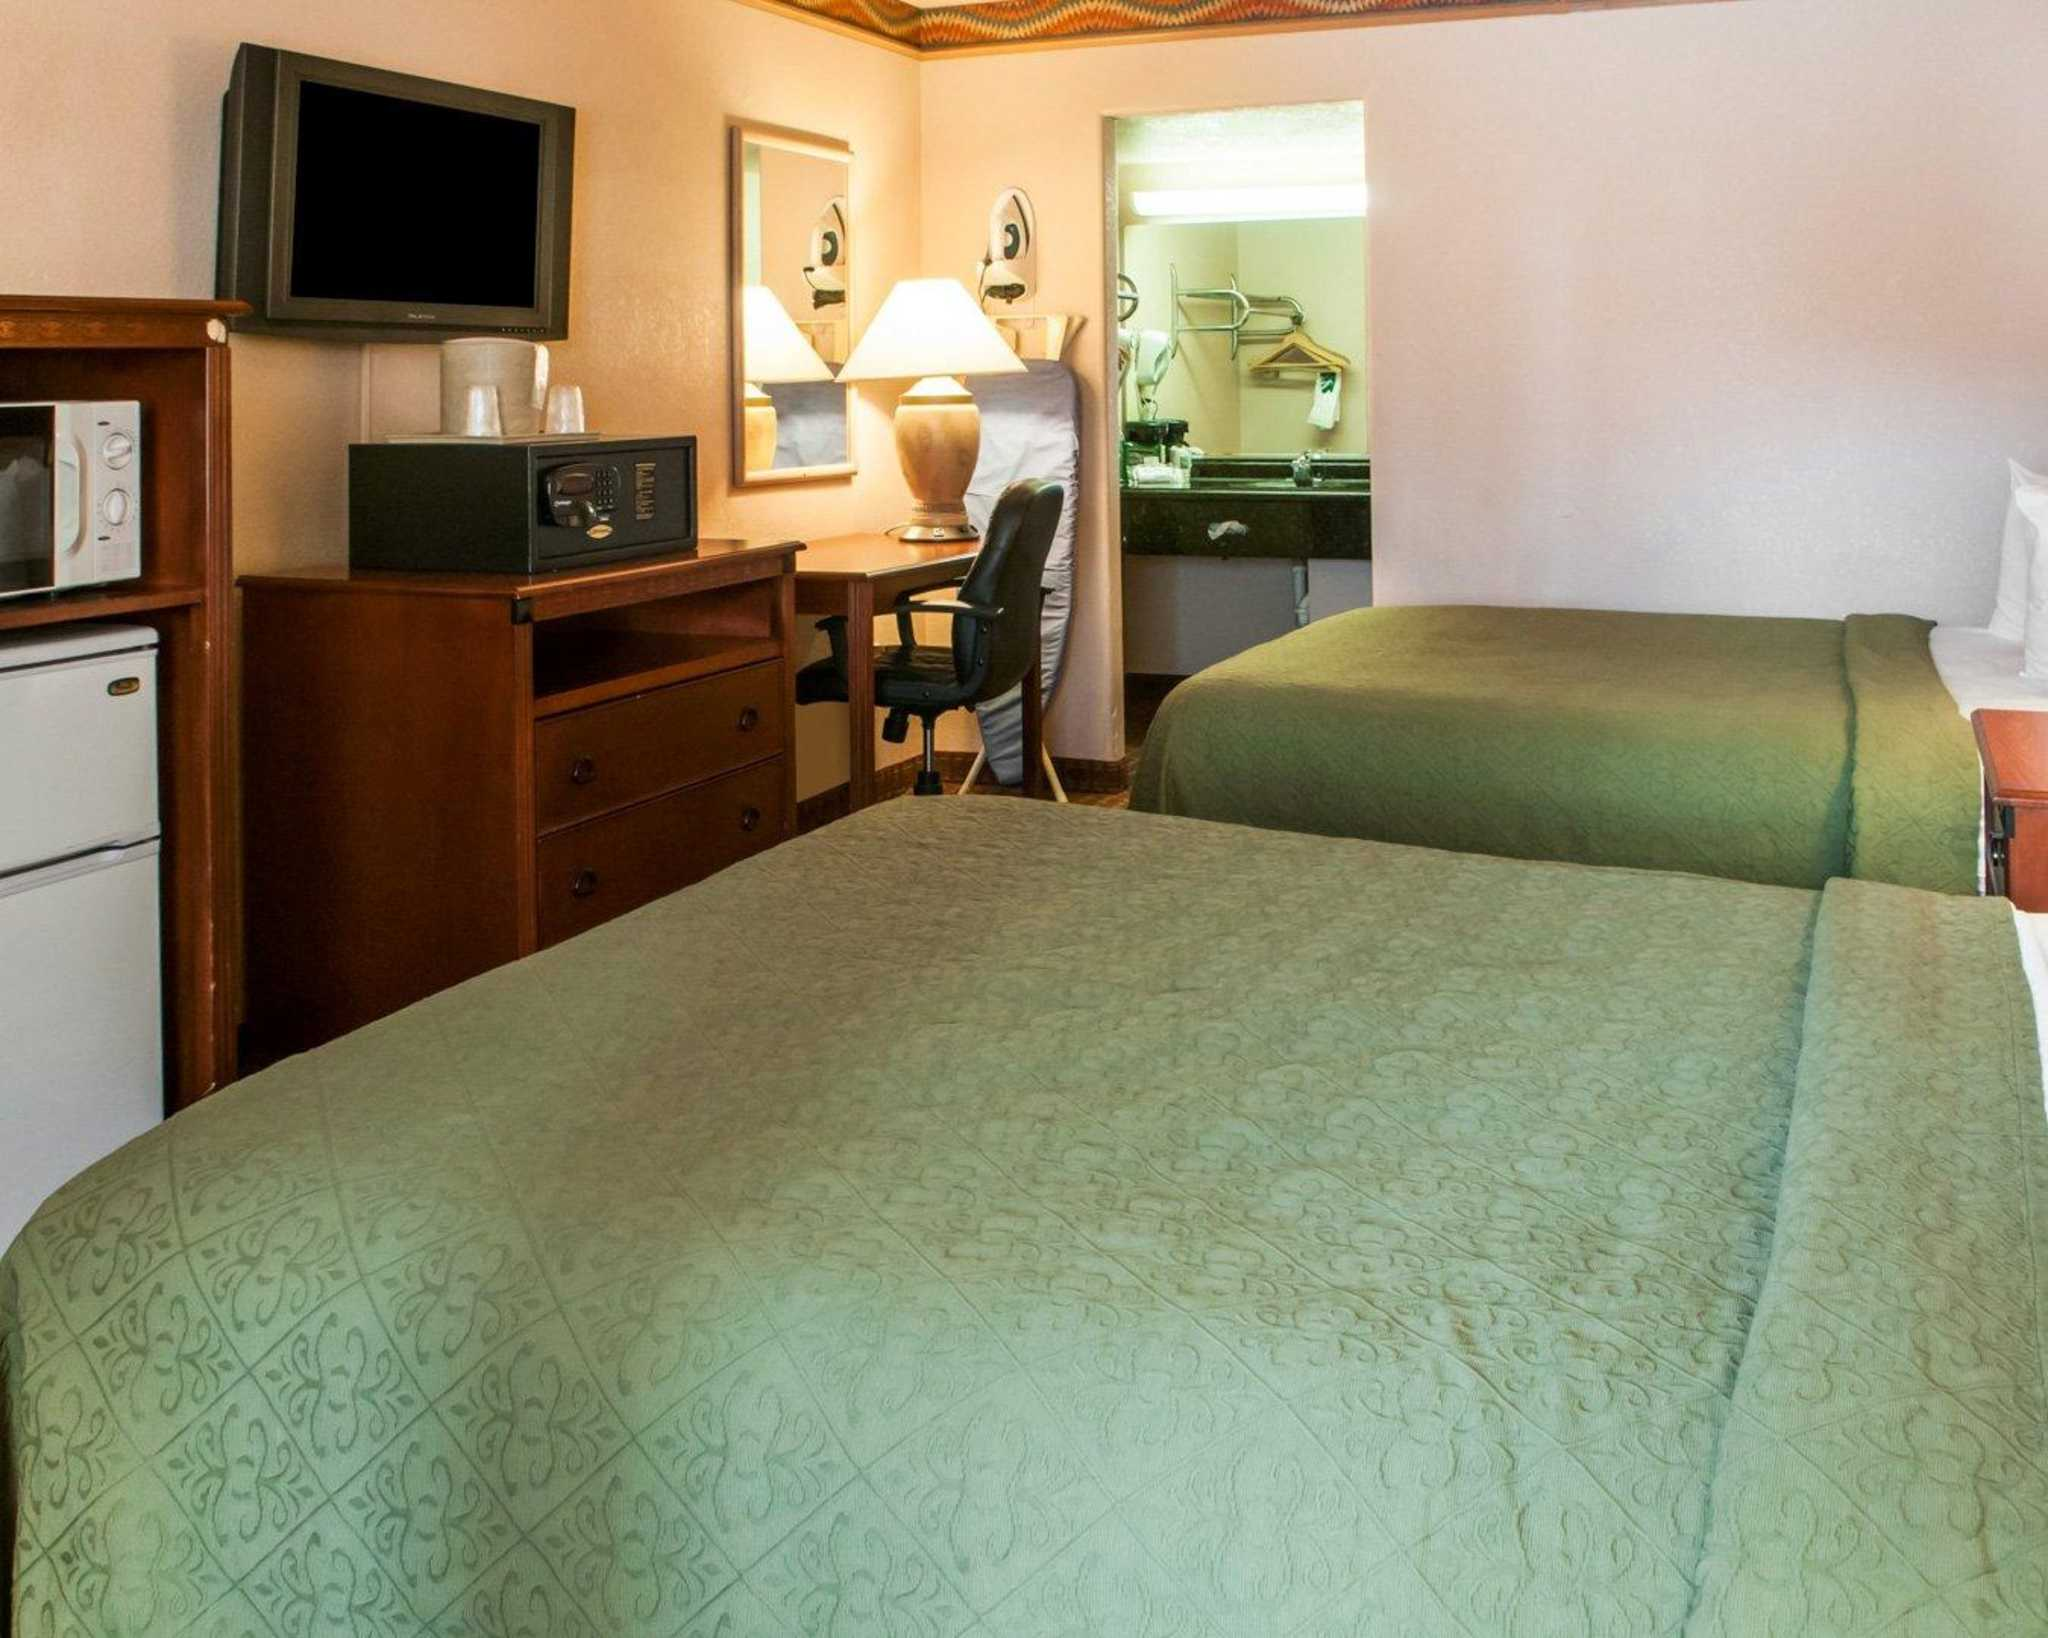 Quality Inn Amp Suites Las Cruces Nm Business Information